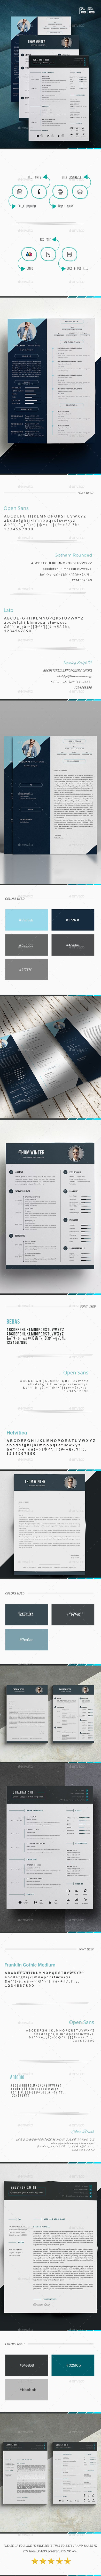 Bundle #cover letter #professional  • Download here → https://graphicriver.net/item/bundle/20655237?ref=pxcr